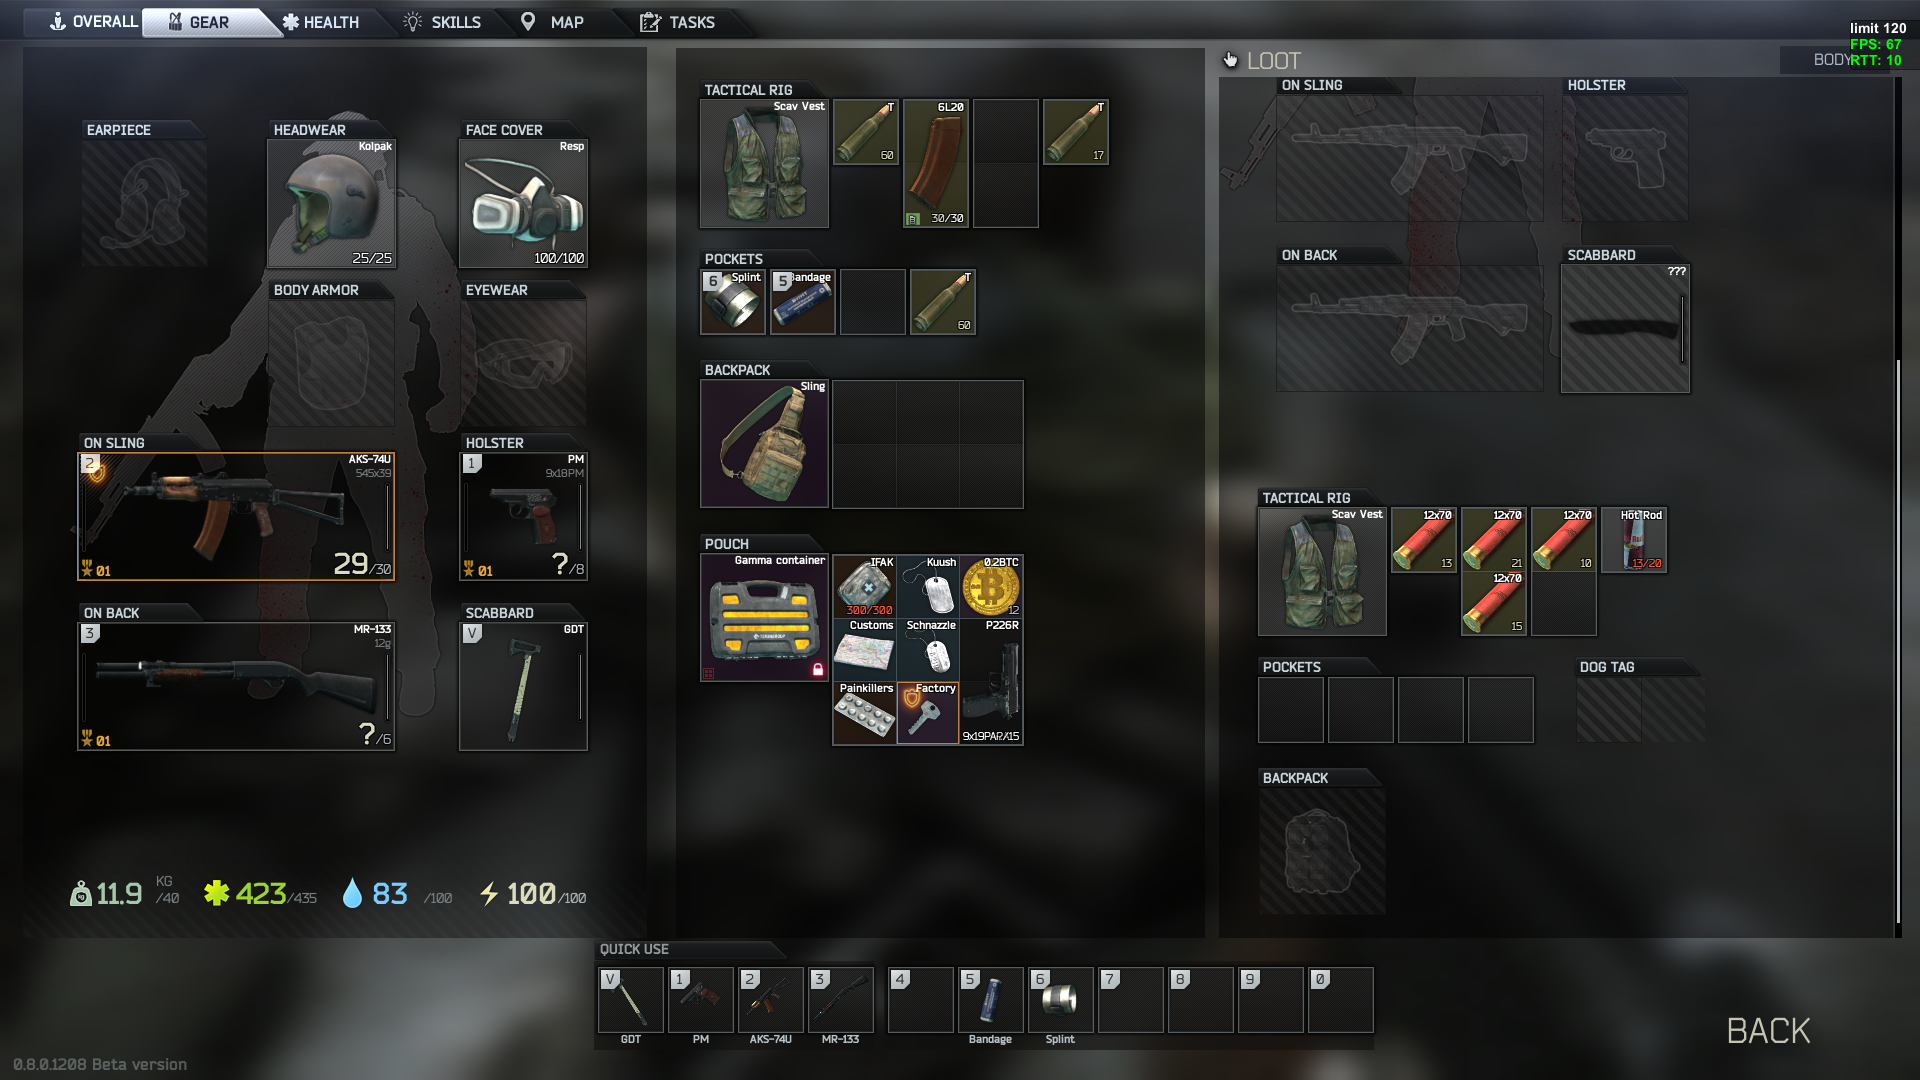 How do you get bitcoin in escape from tarkov